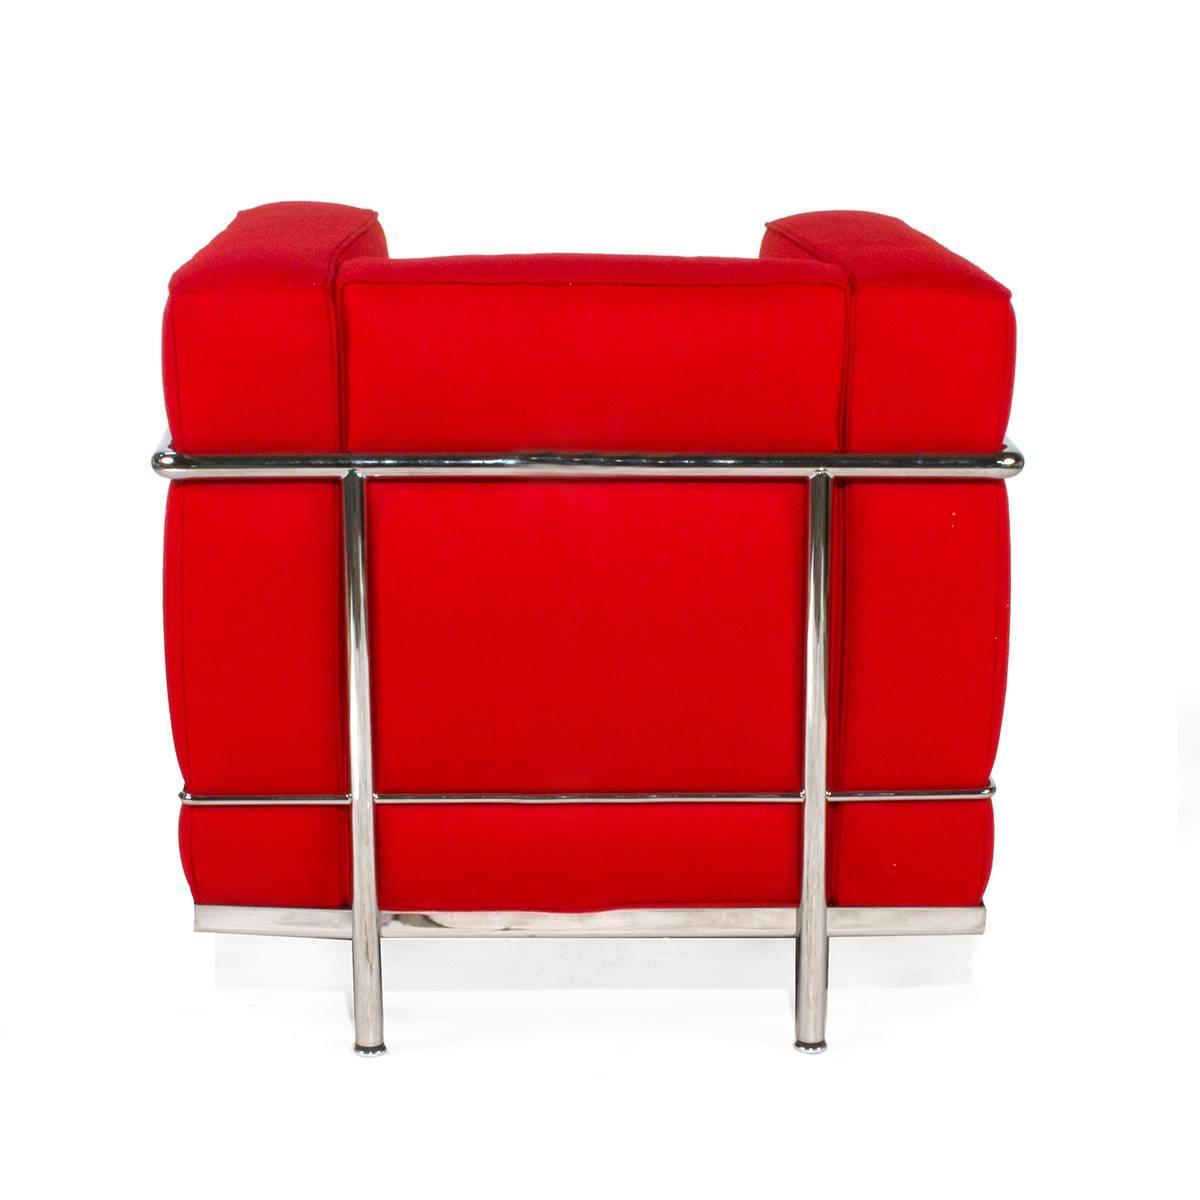 red cassina lc2 chair by le corbusier modern italy armchair for sale